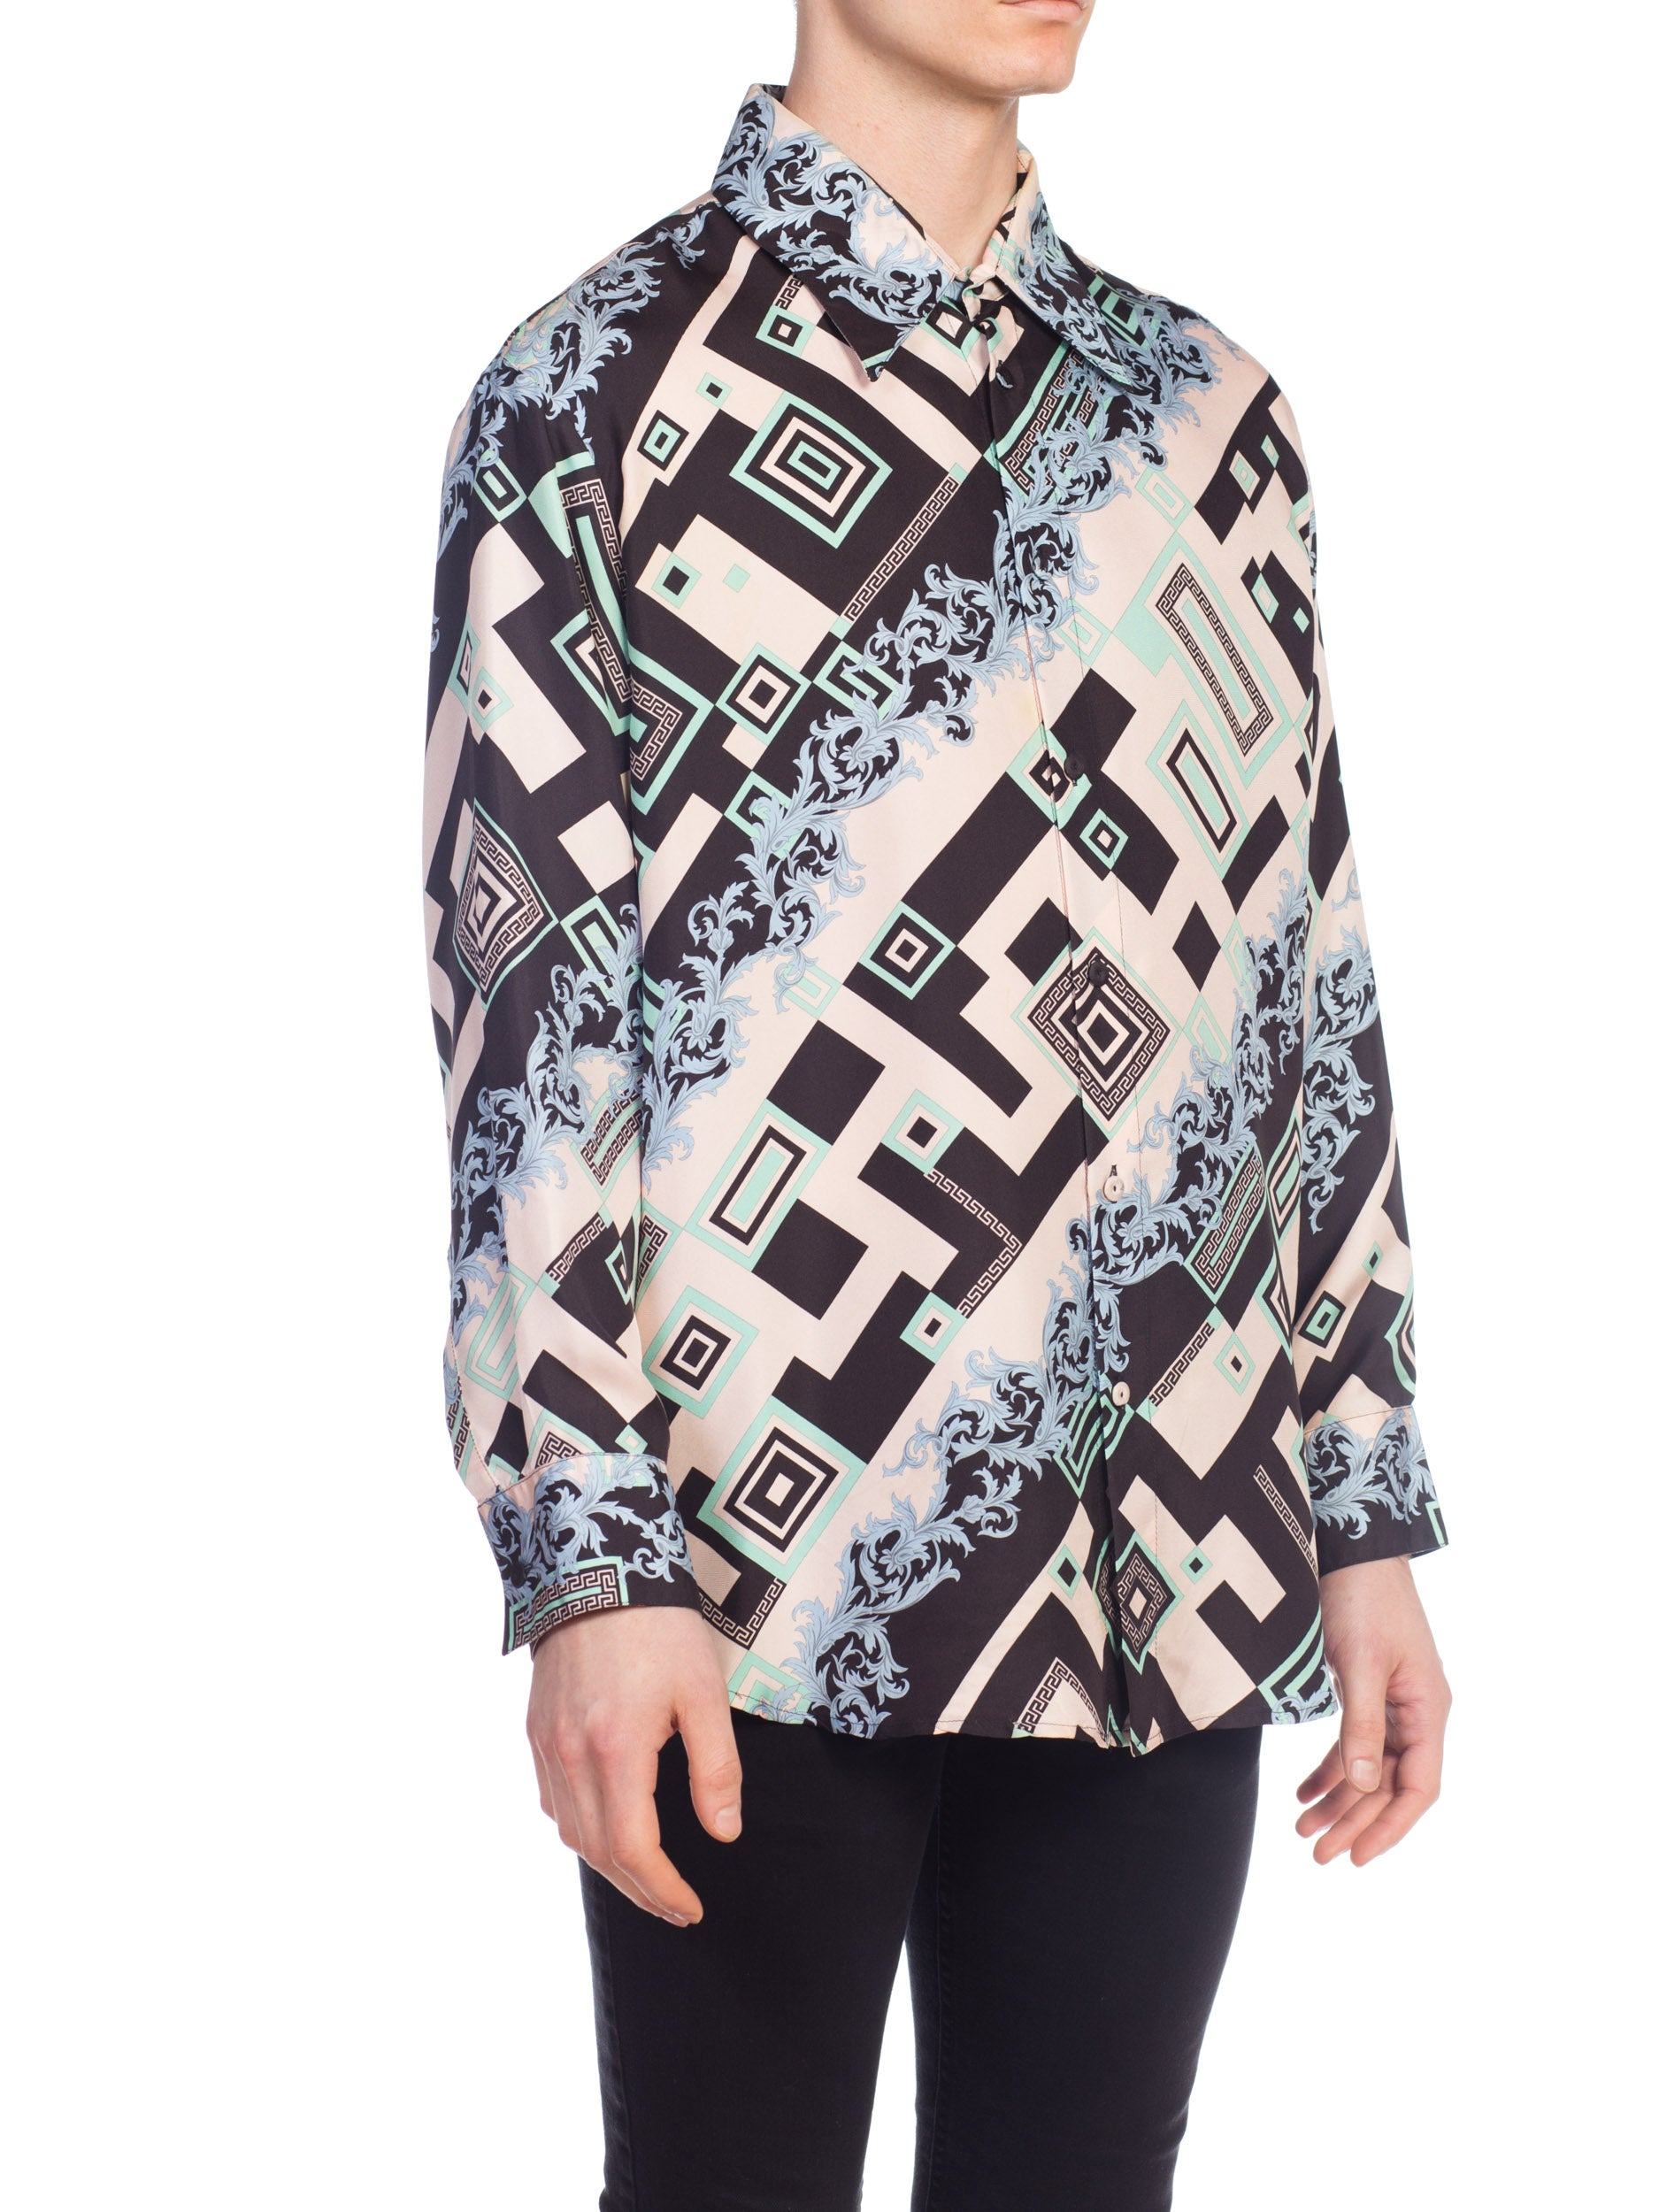 1990S  GIANNI VERSACE Geometric Baroque Silk Atelier Men's Shirt